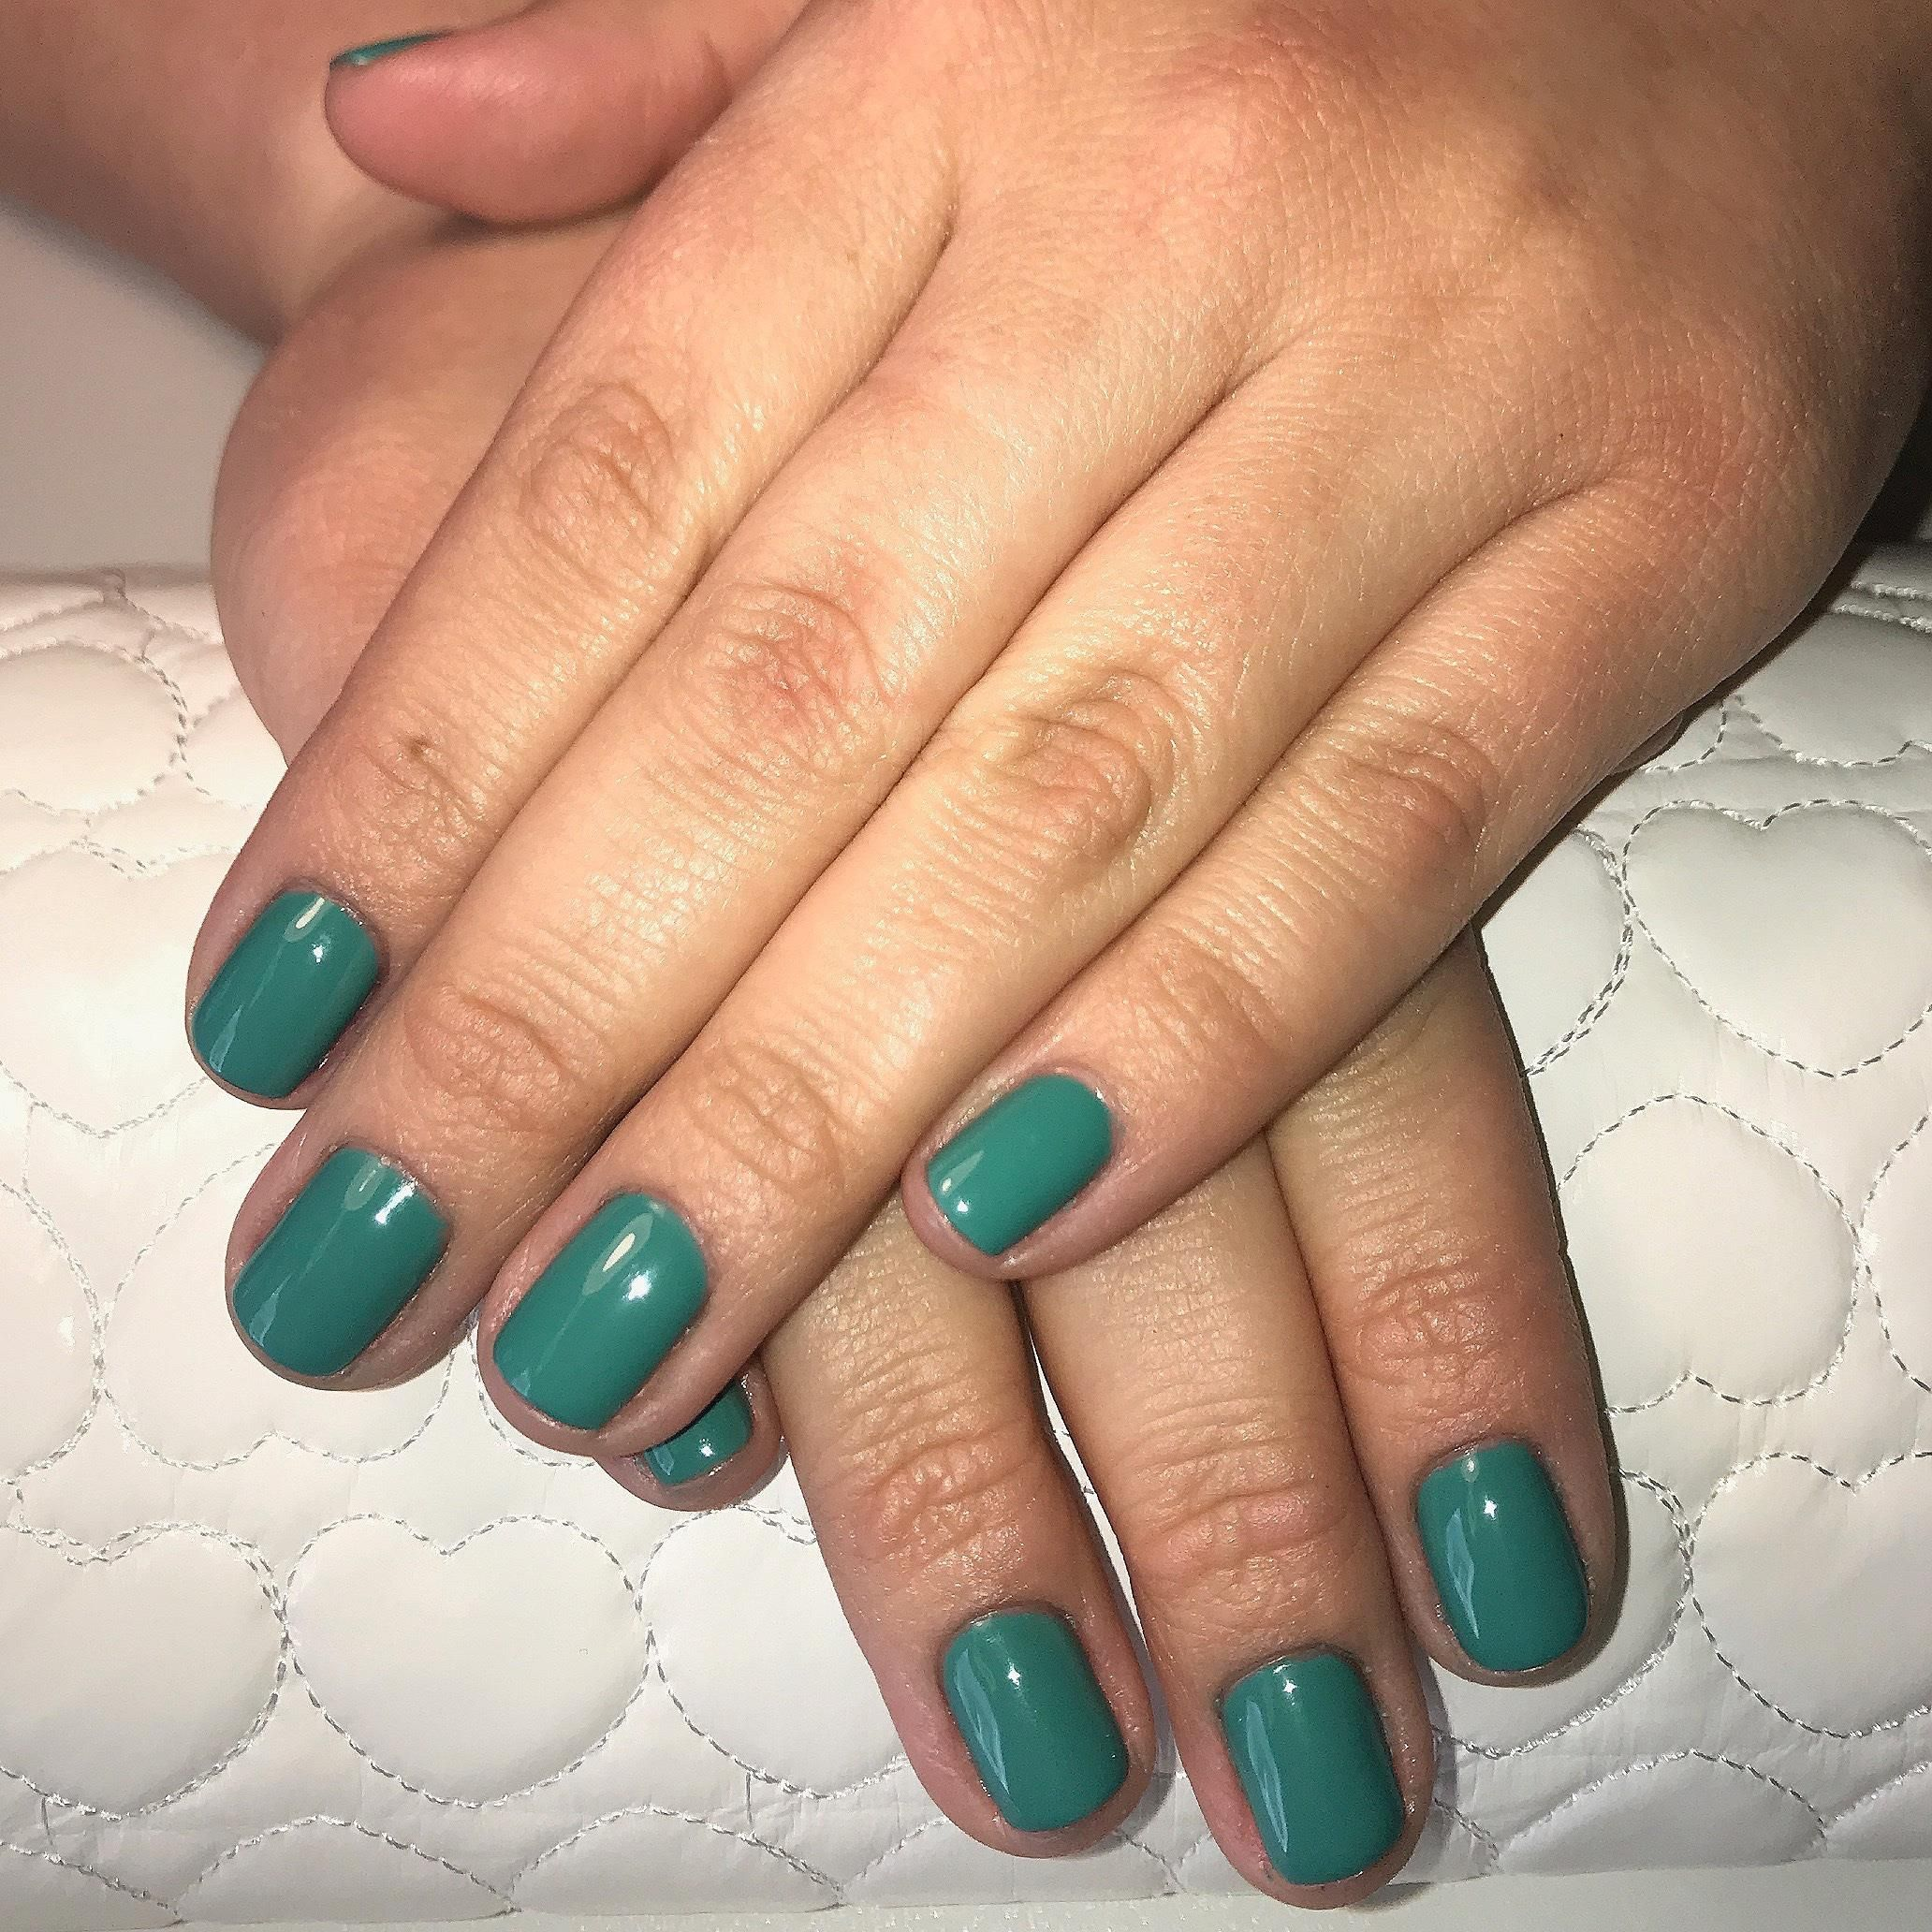 Dip Platinum Manicure 45 All nail services come with a